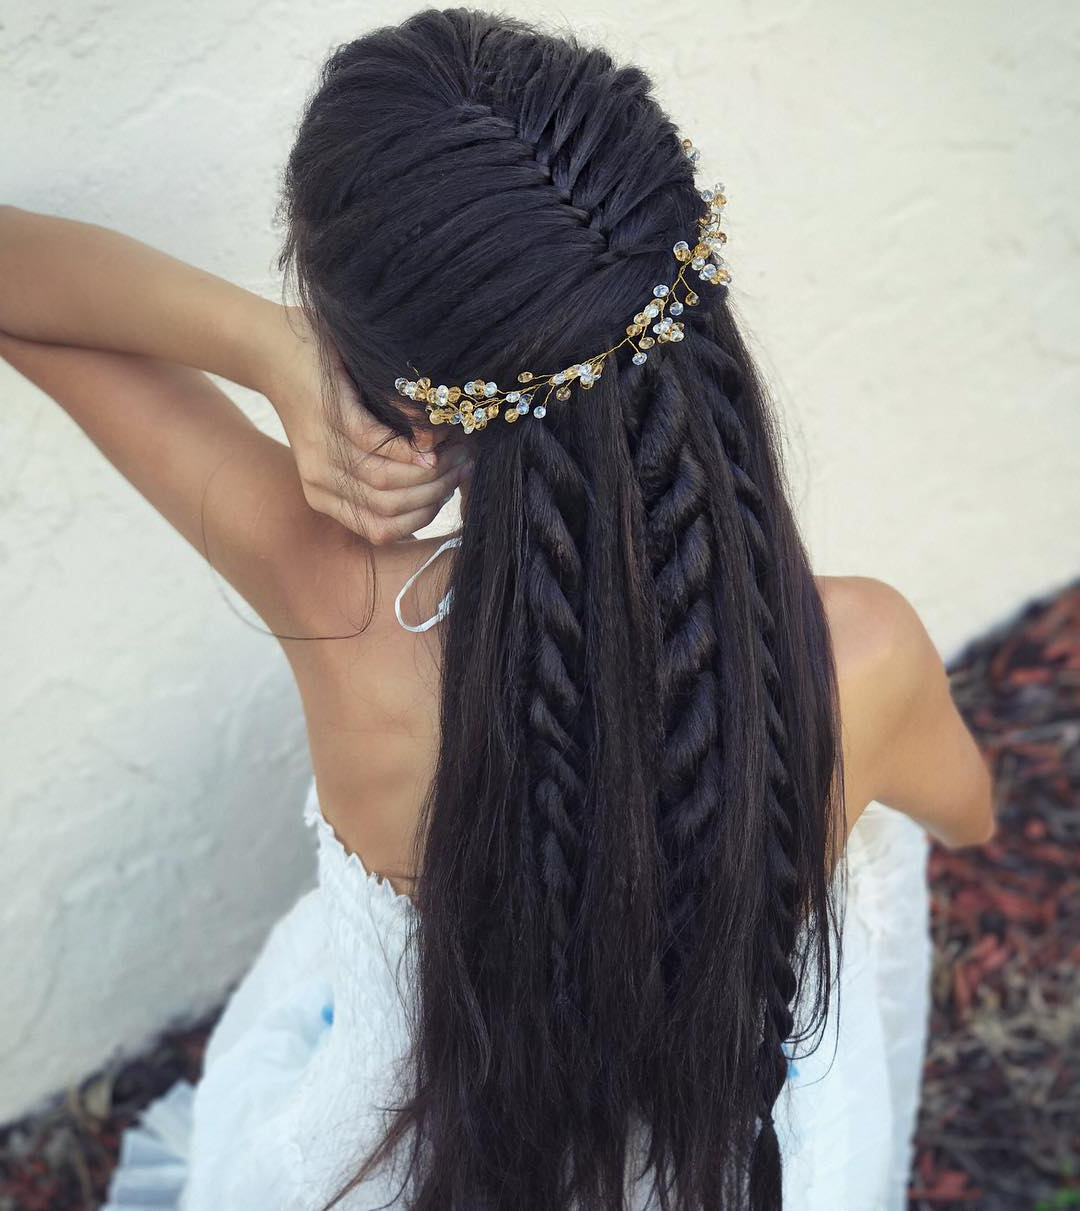 30 Rope Braid Hairstyles Looking Both Casual And Fancy Within Popular Rope And Fishtail Braid Hairstyles (Gallery 13 of 20)